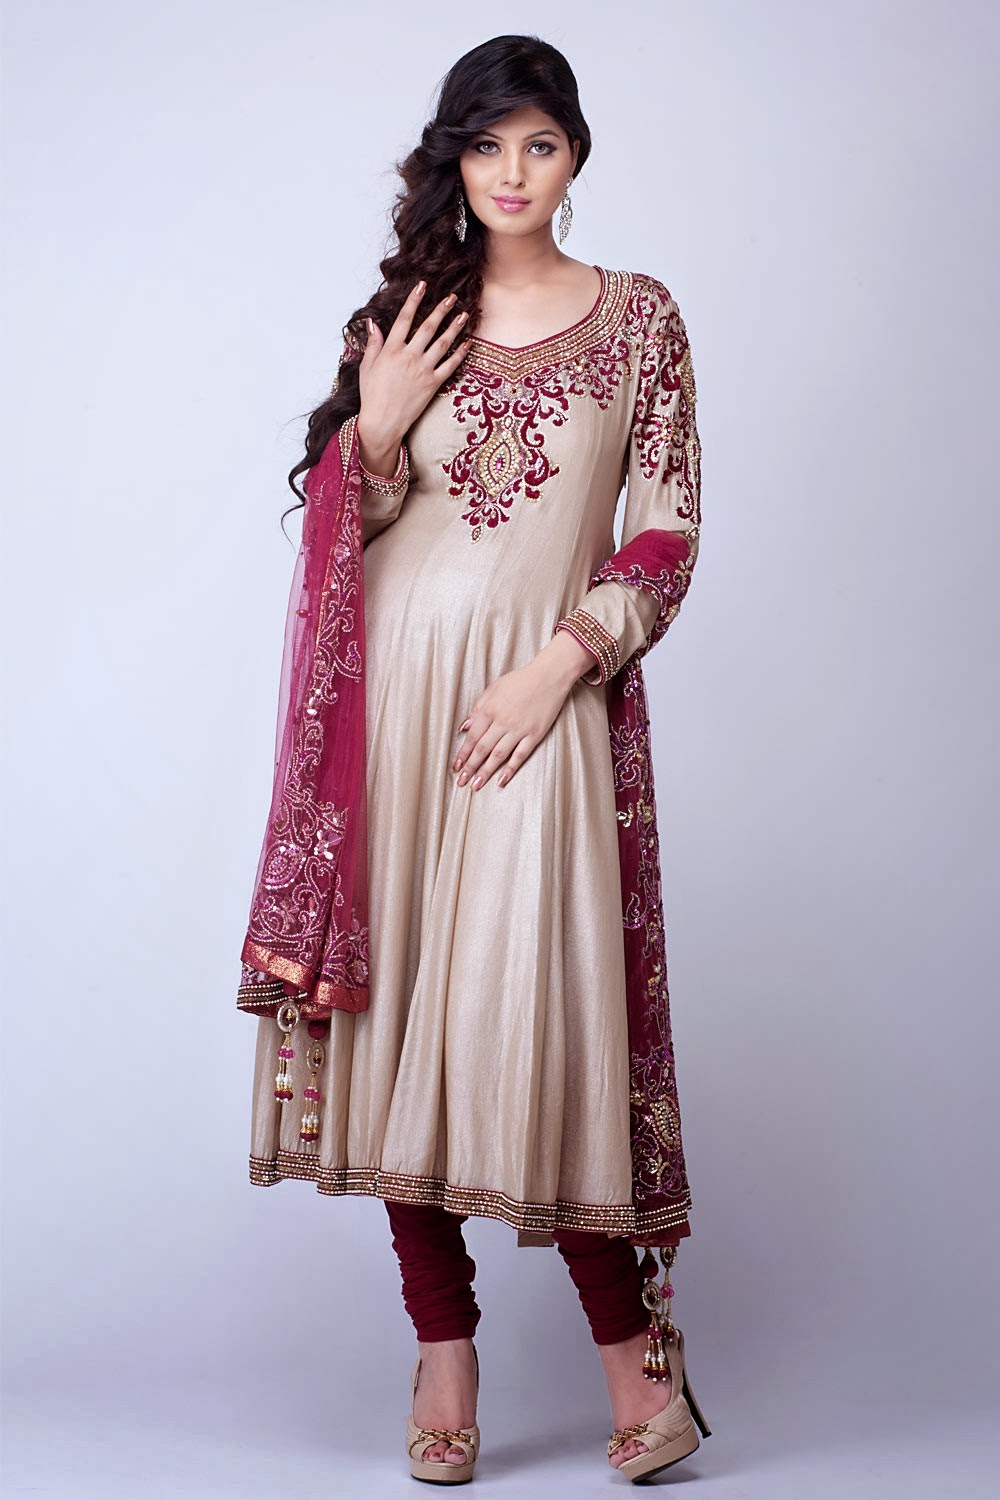 Cool Dresses For Women In Pakistan 2015 Women Dresses 2015 In Pakistan